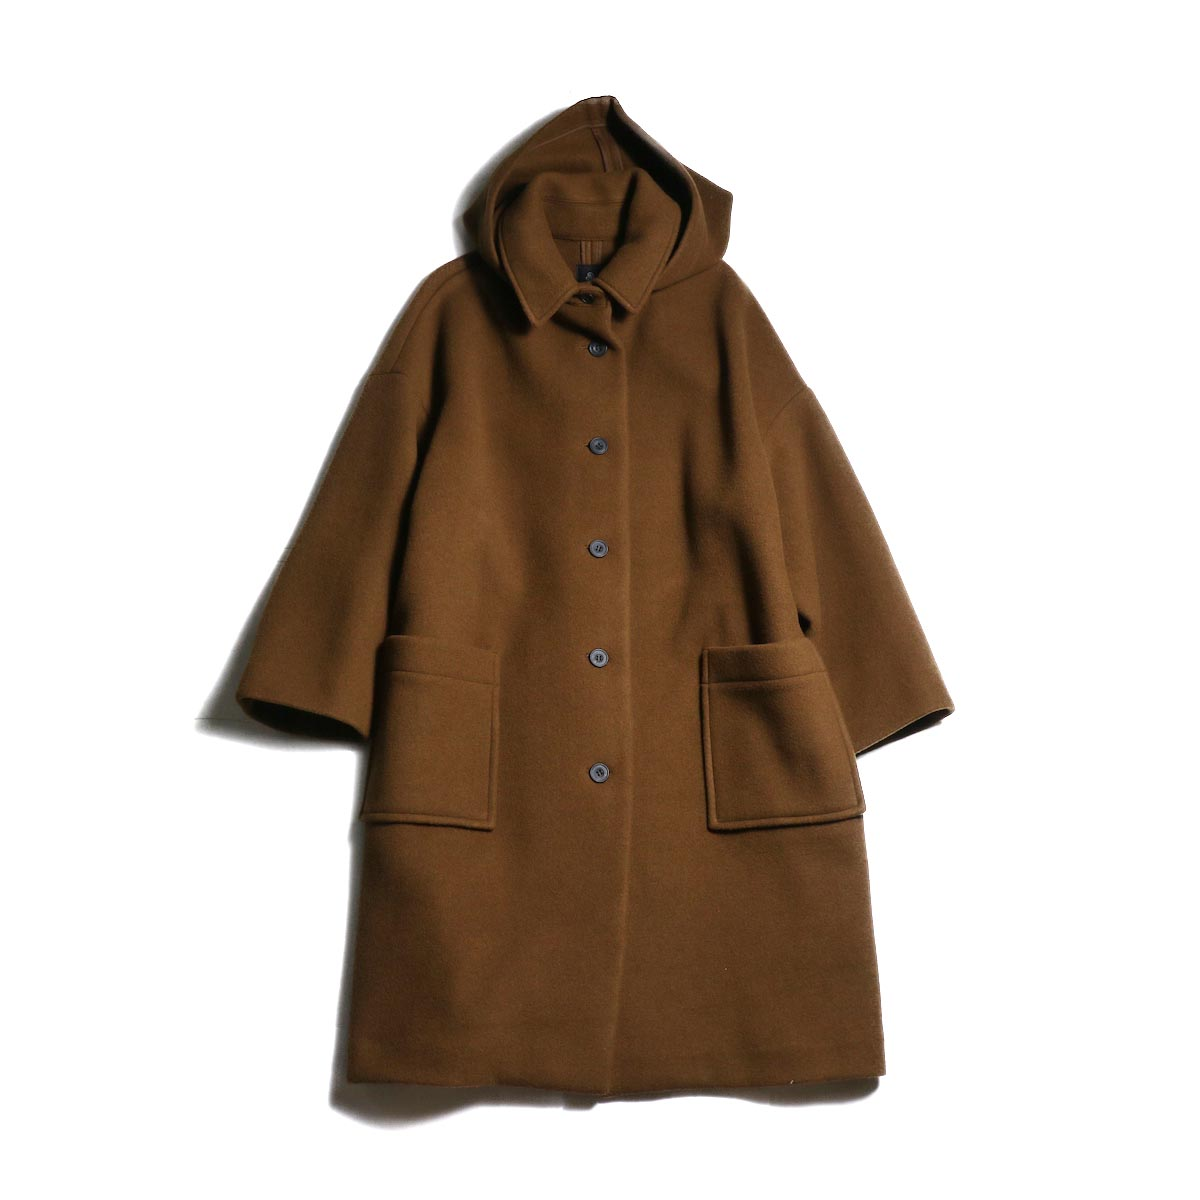 maison de soil / DETACHABLE HOODED COAT (Lt.Brown)